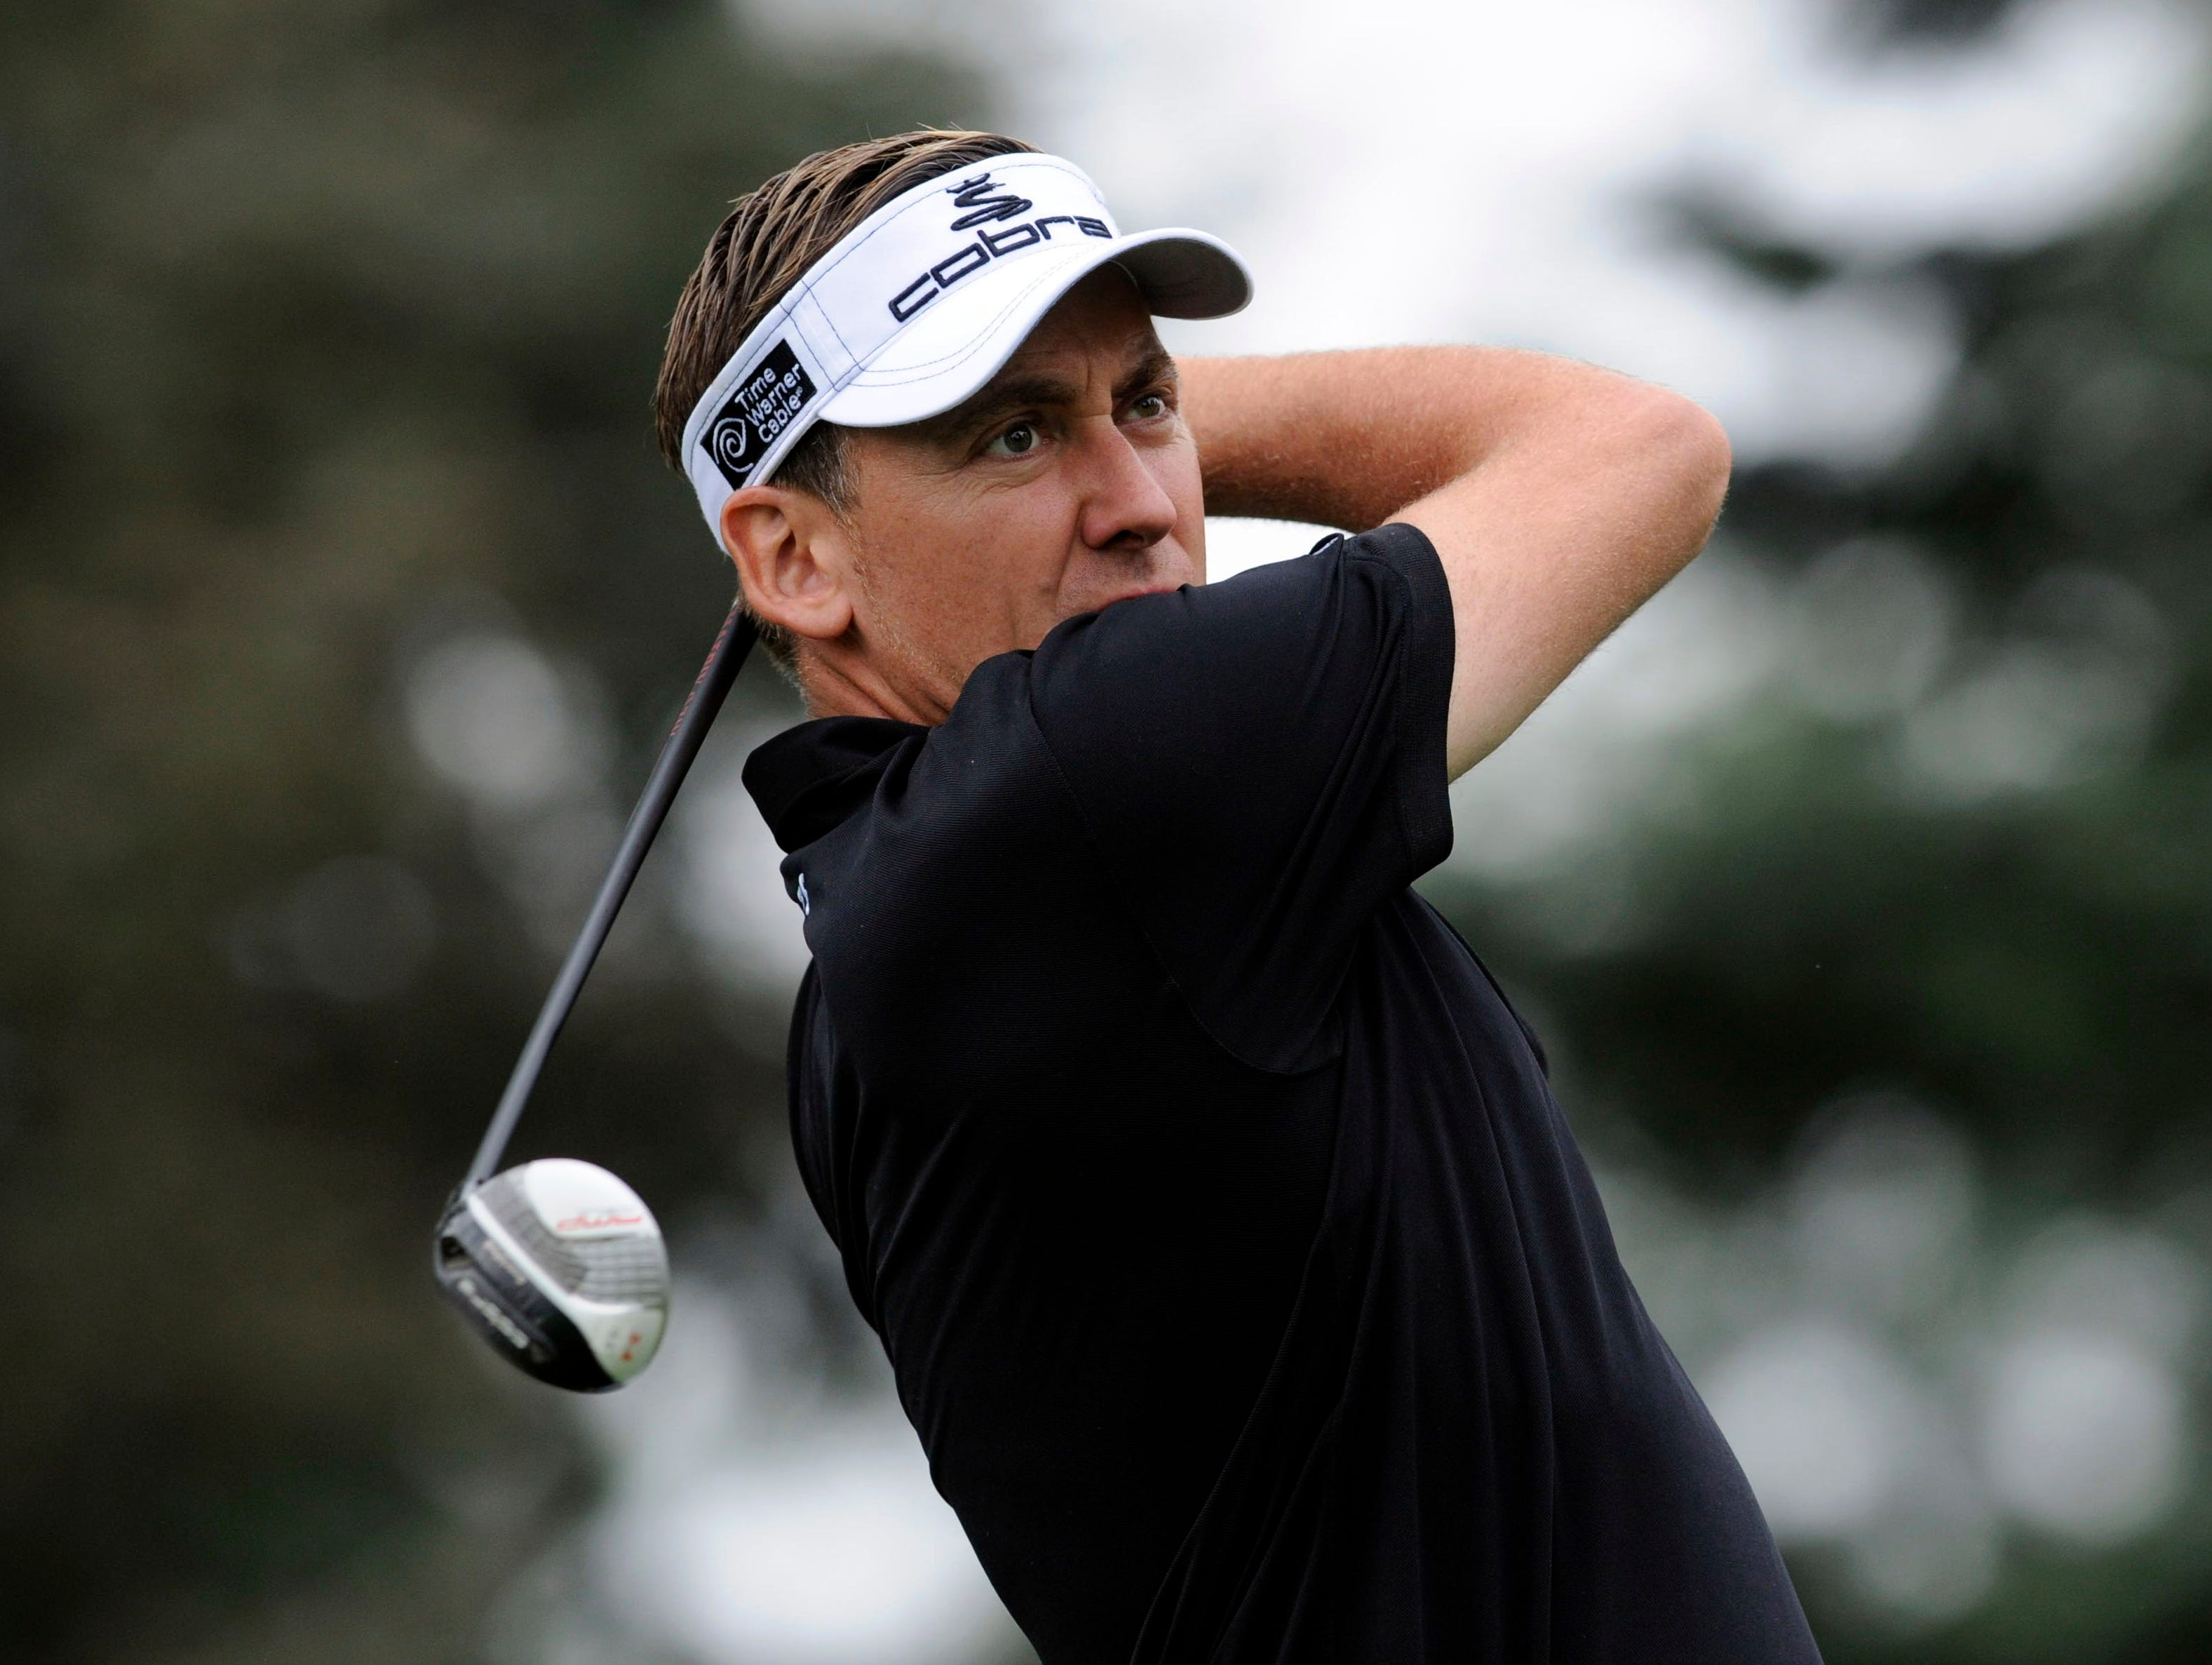 Ian Poulter tees off on the 7th hole during the second round.